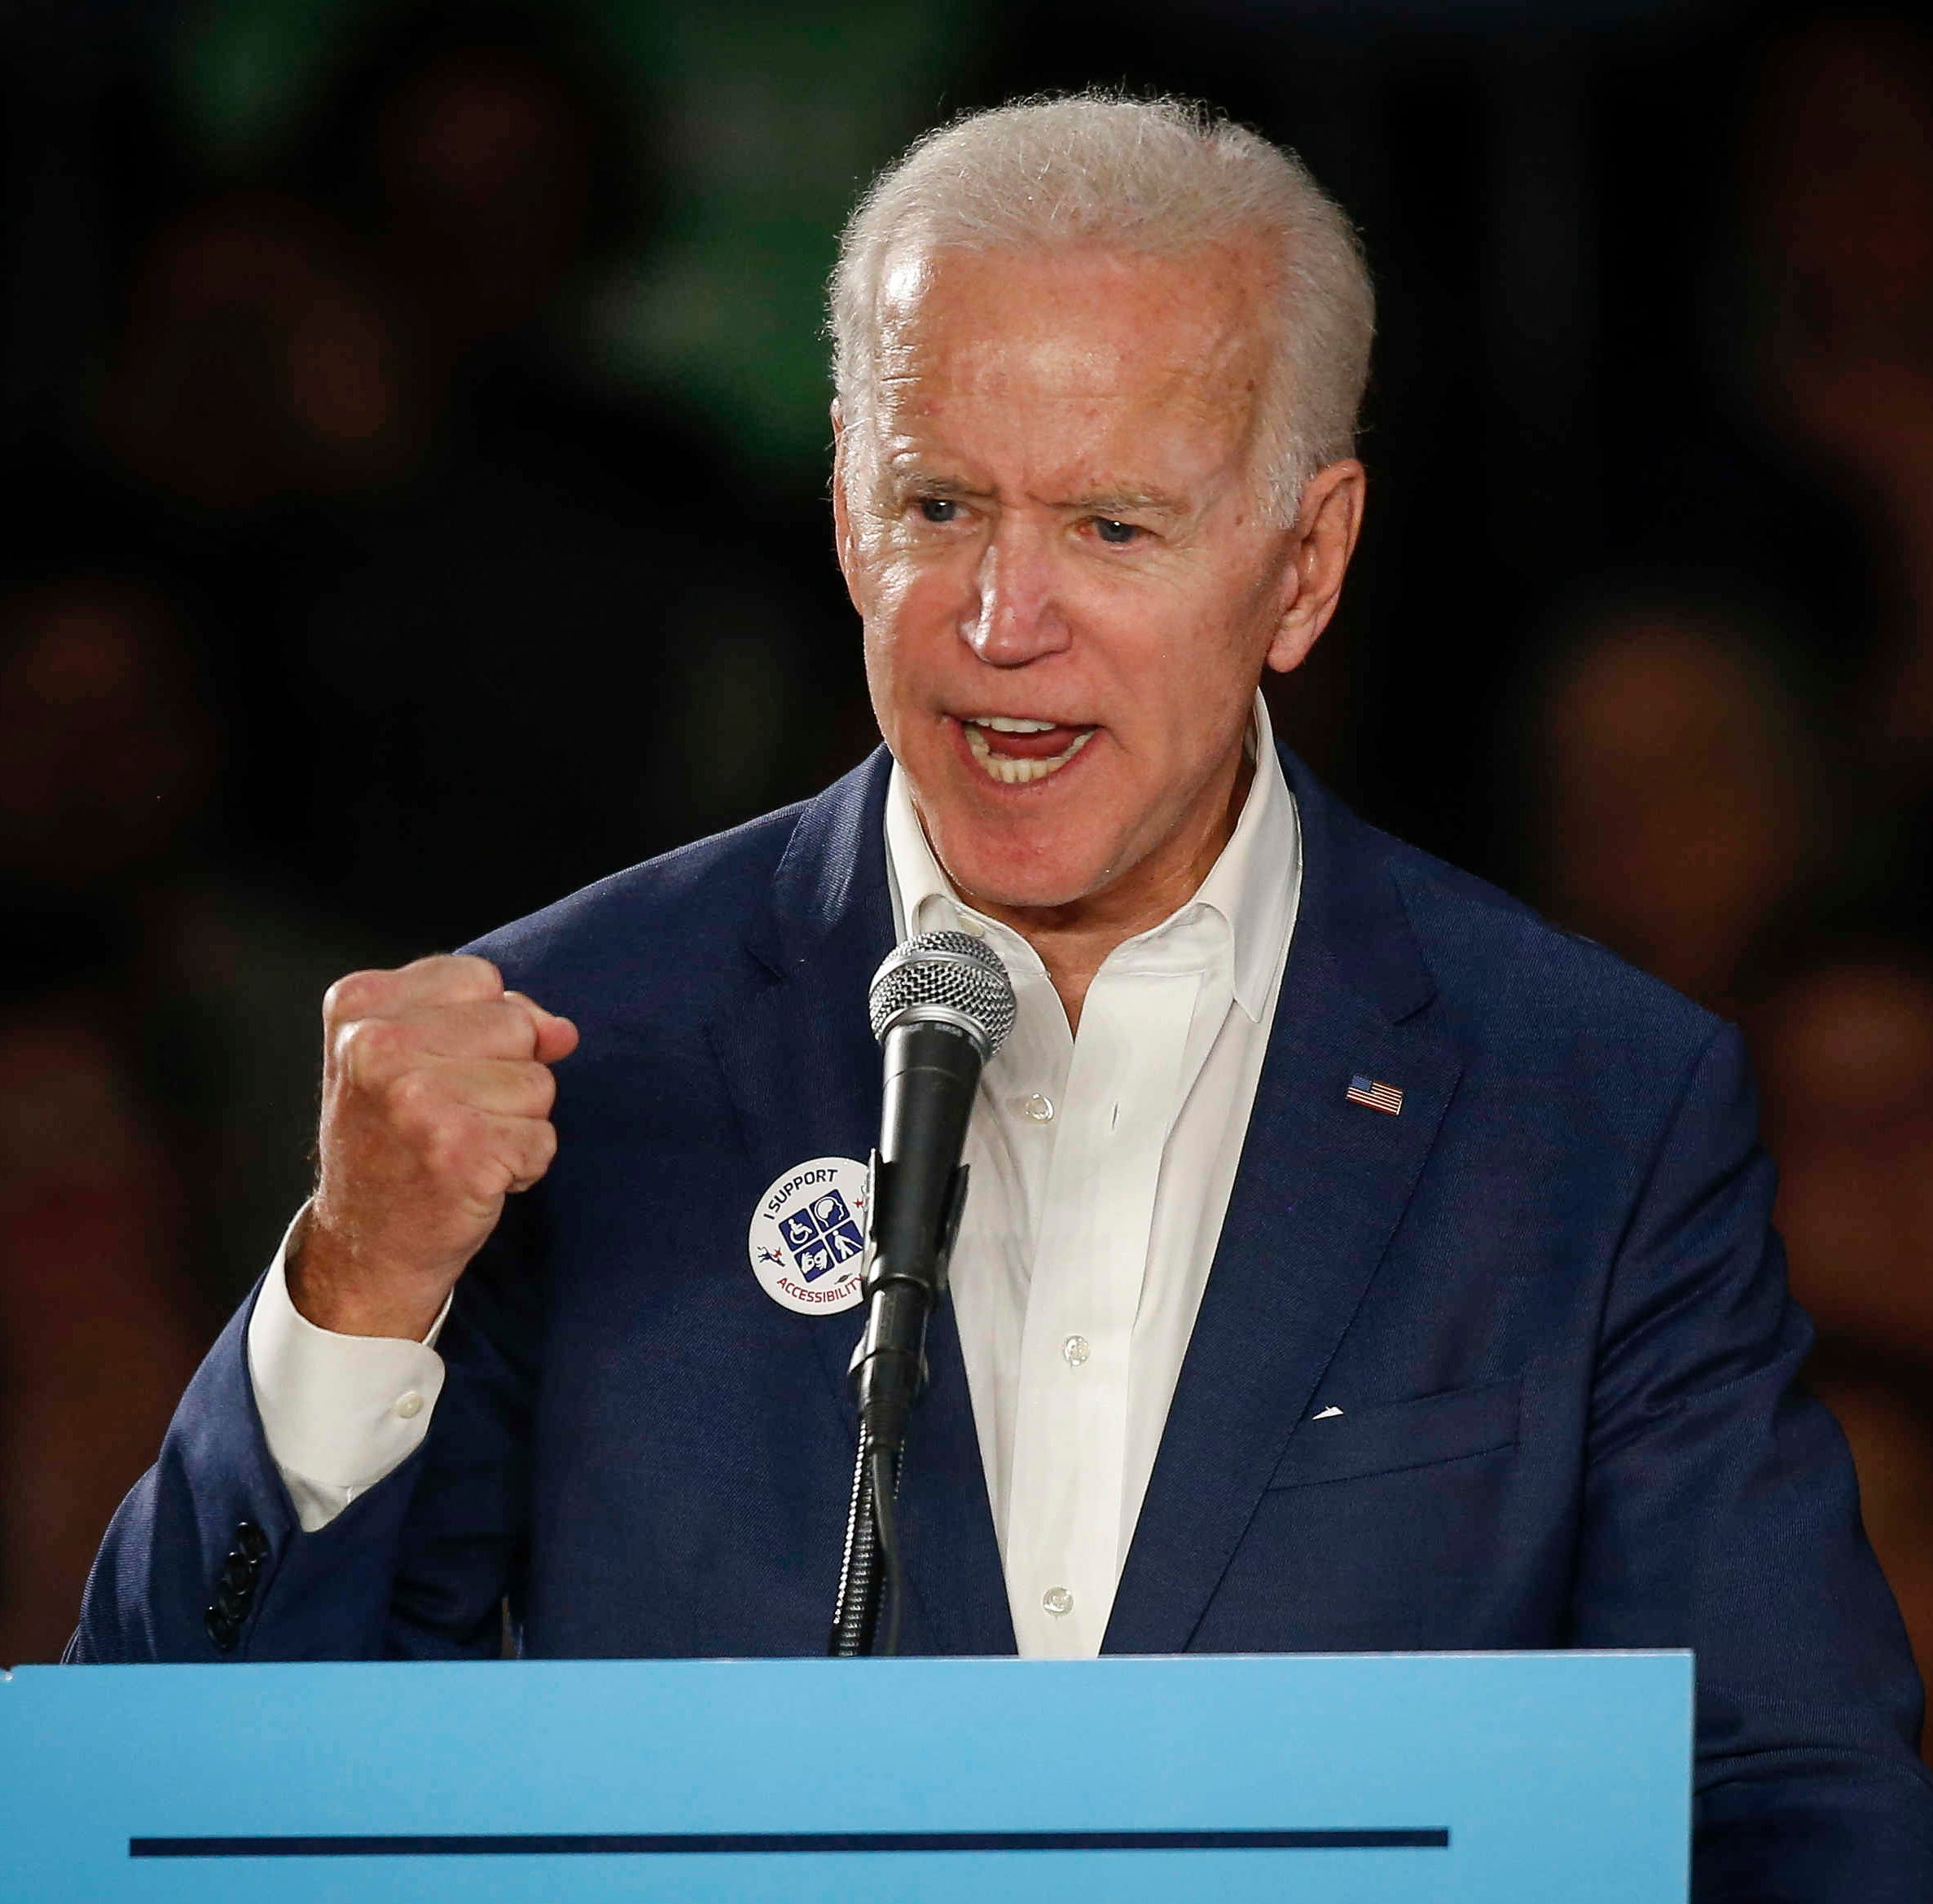 Joe Biden in Cedar Rapids: 'America is so much better than this'